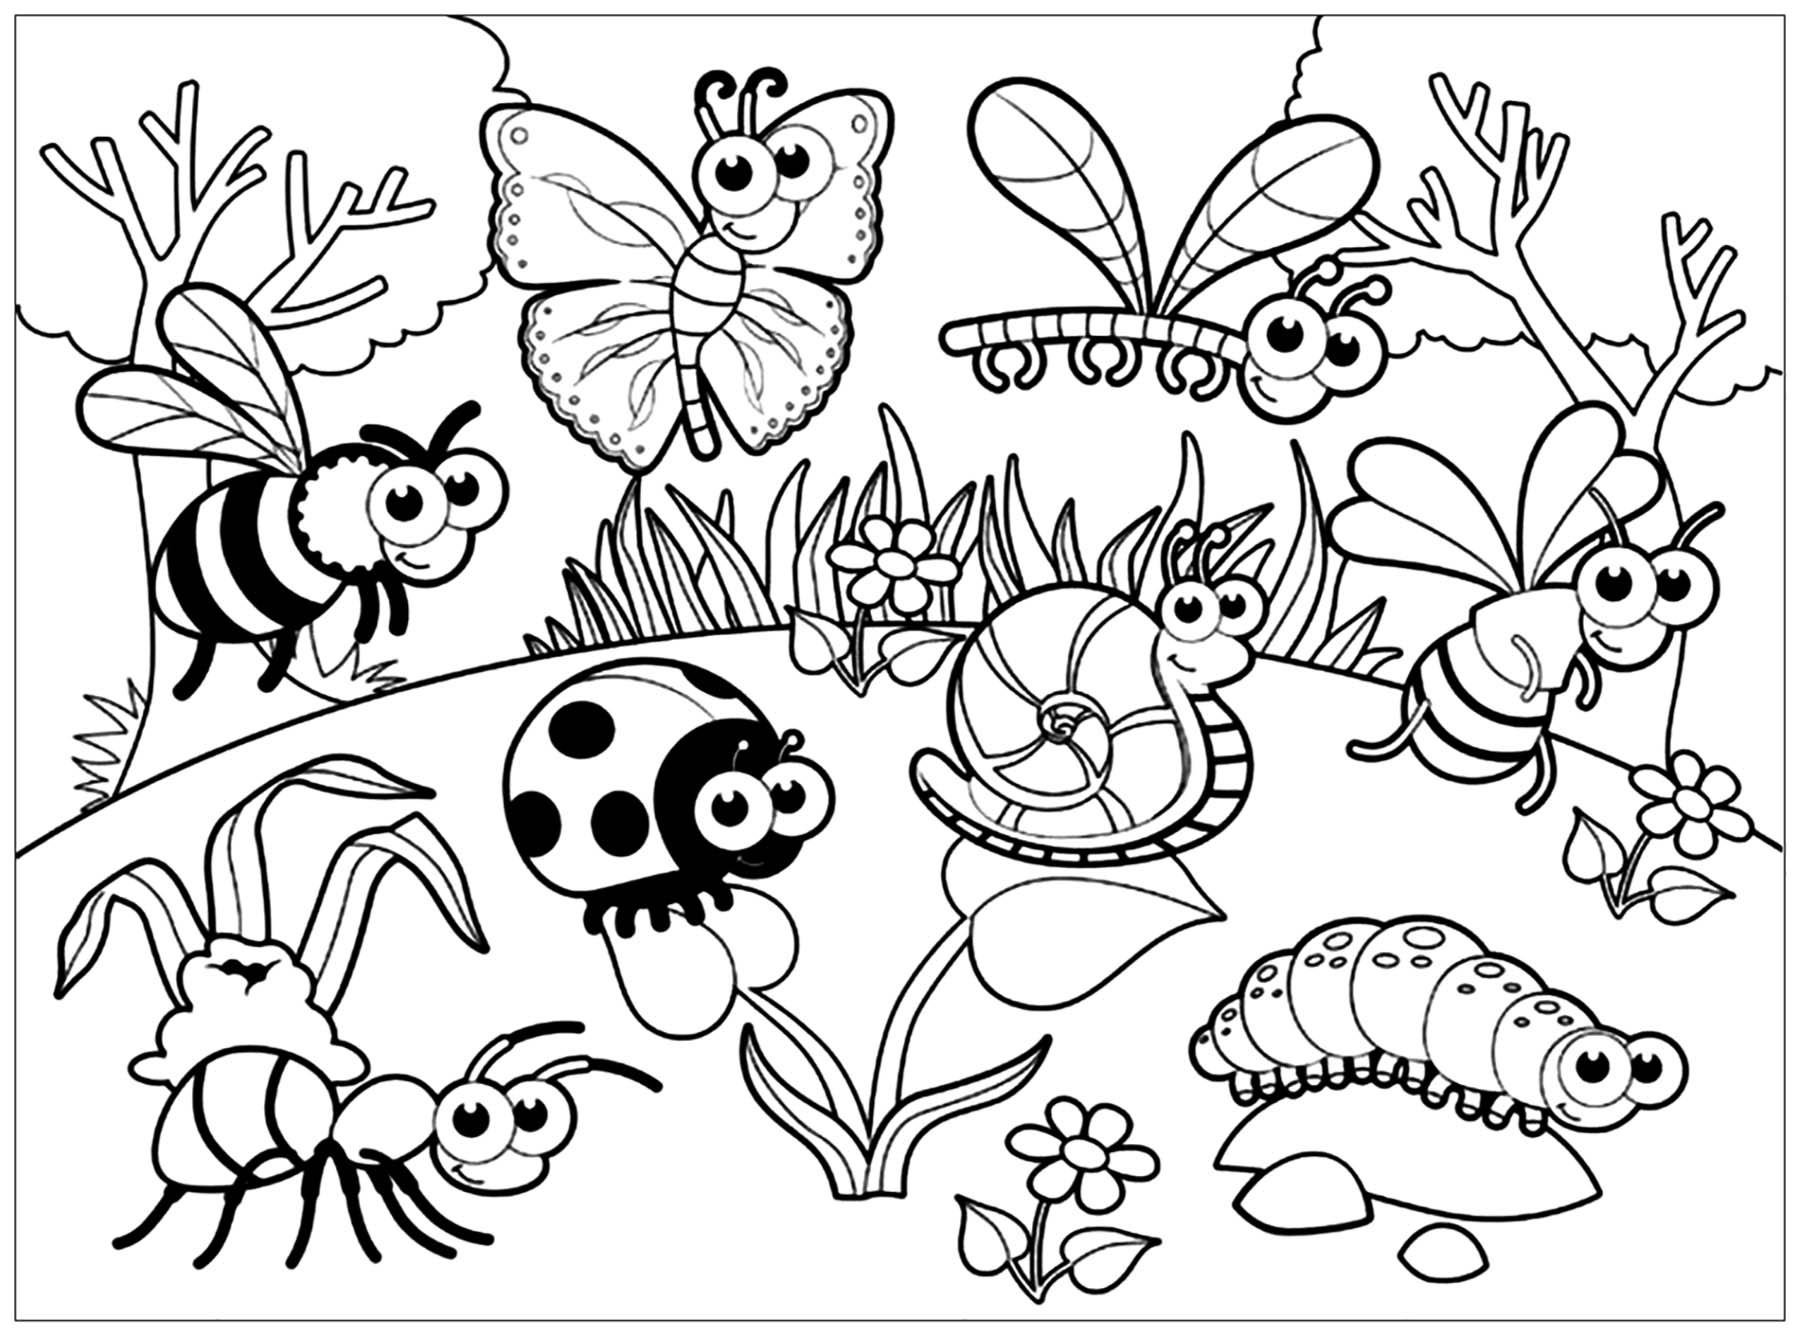 insects coloring sheets realistic insect coloring pages realistic coloring pages coloring insects sheets